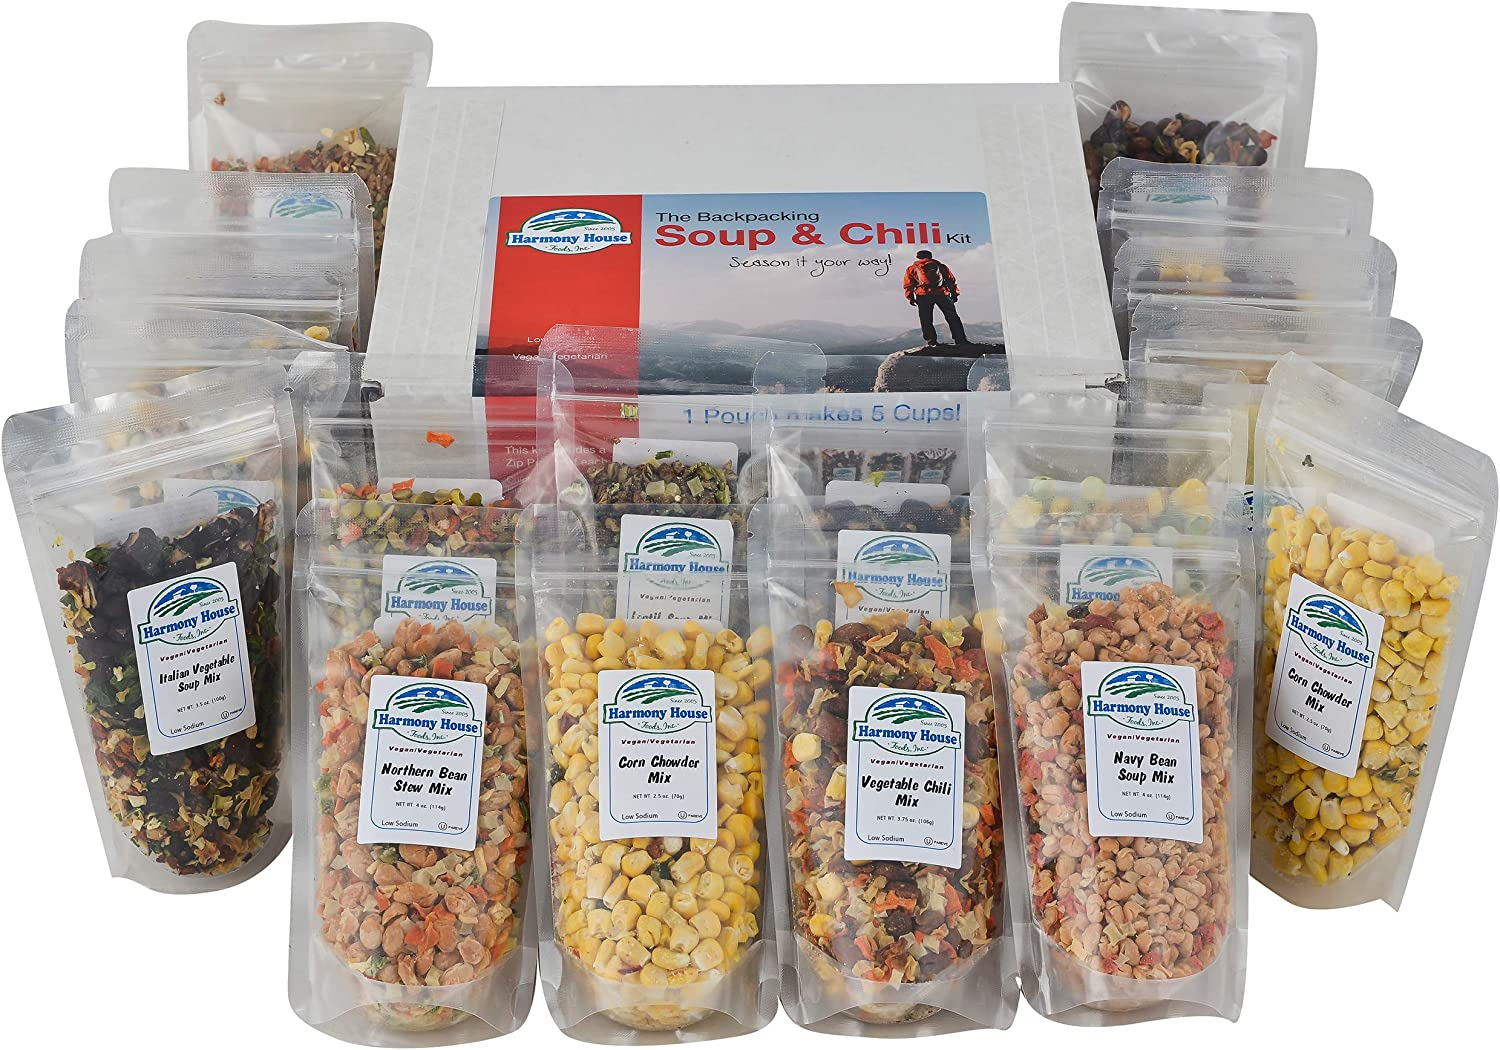 Harmony House Backpacking Soup and Chili Kit (Unseasoned) – 18 Count Variety Pack, Resealable Zip Pouches, For Cooking, Camping, Emergency Supply and More